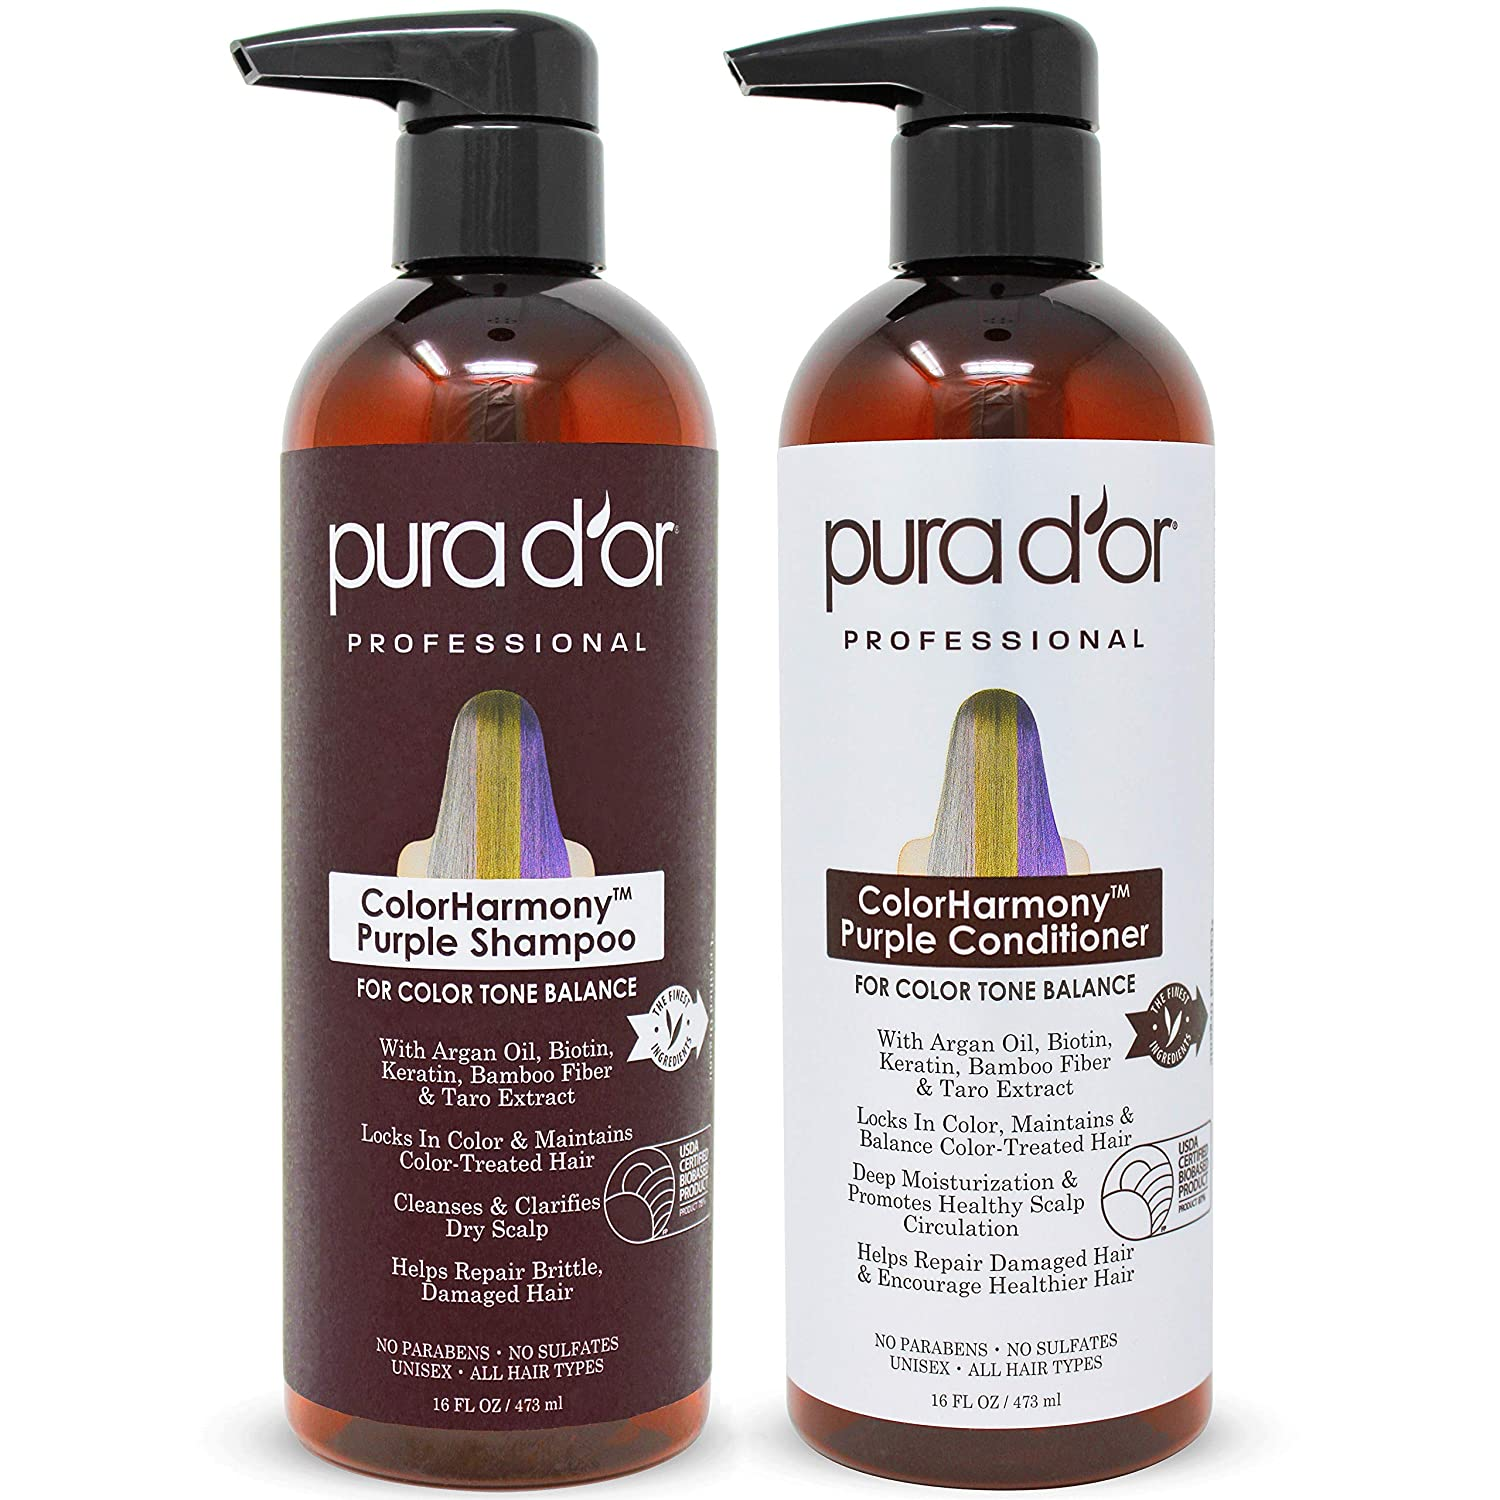 PURA D'OR ColorHarmony Purple Shampoo & Conditioner set